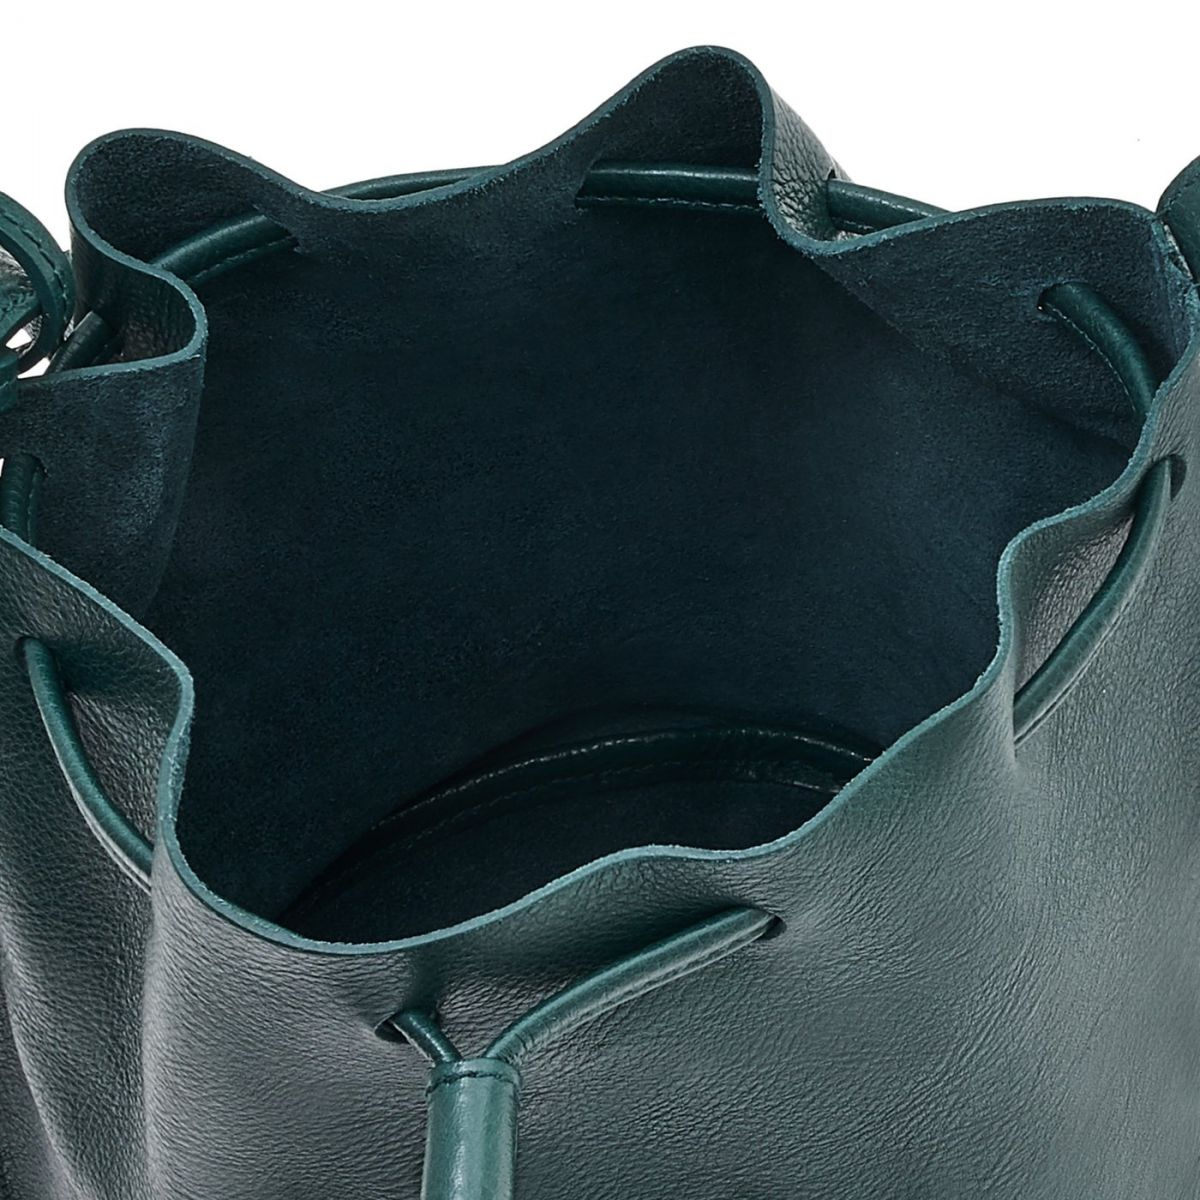 Women's Bucket Bag Stibbert in Cowhide Leather BBU006 color Rosemary | Details